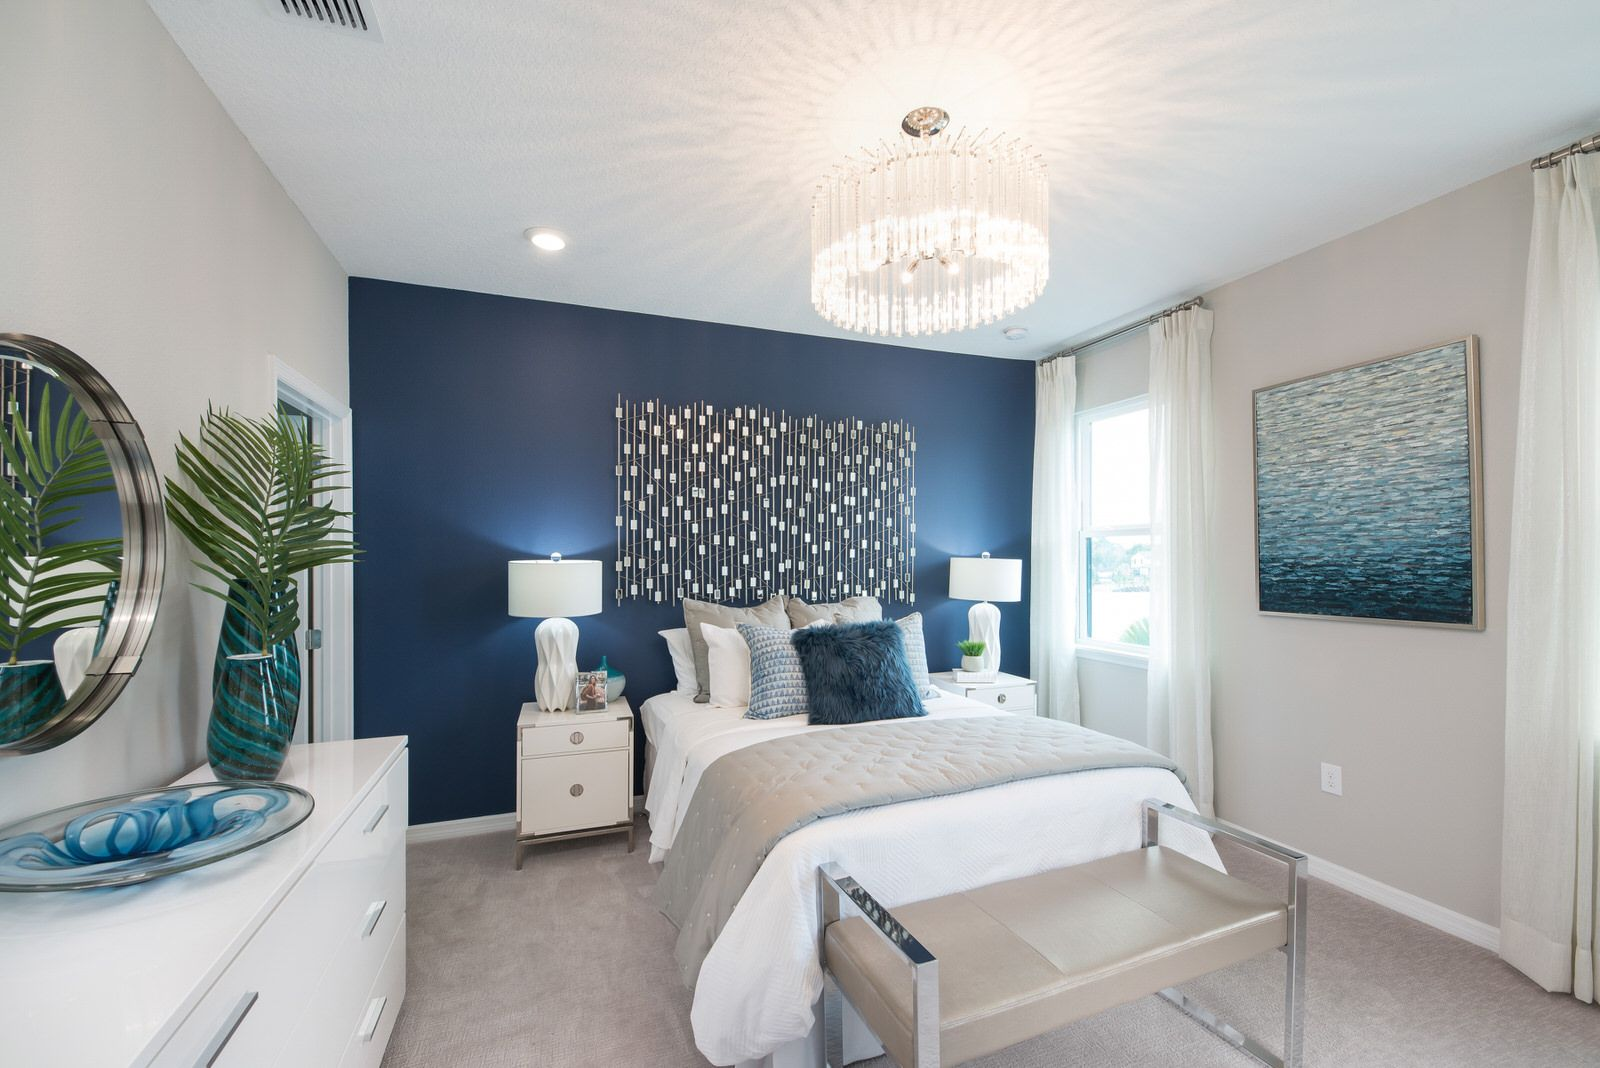 Bedroom featured in the Anastasia By Taylor Morrison in Orlando, FL